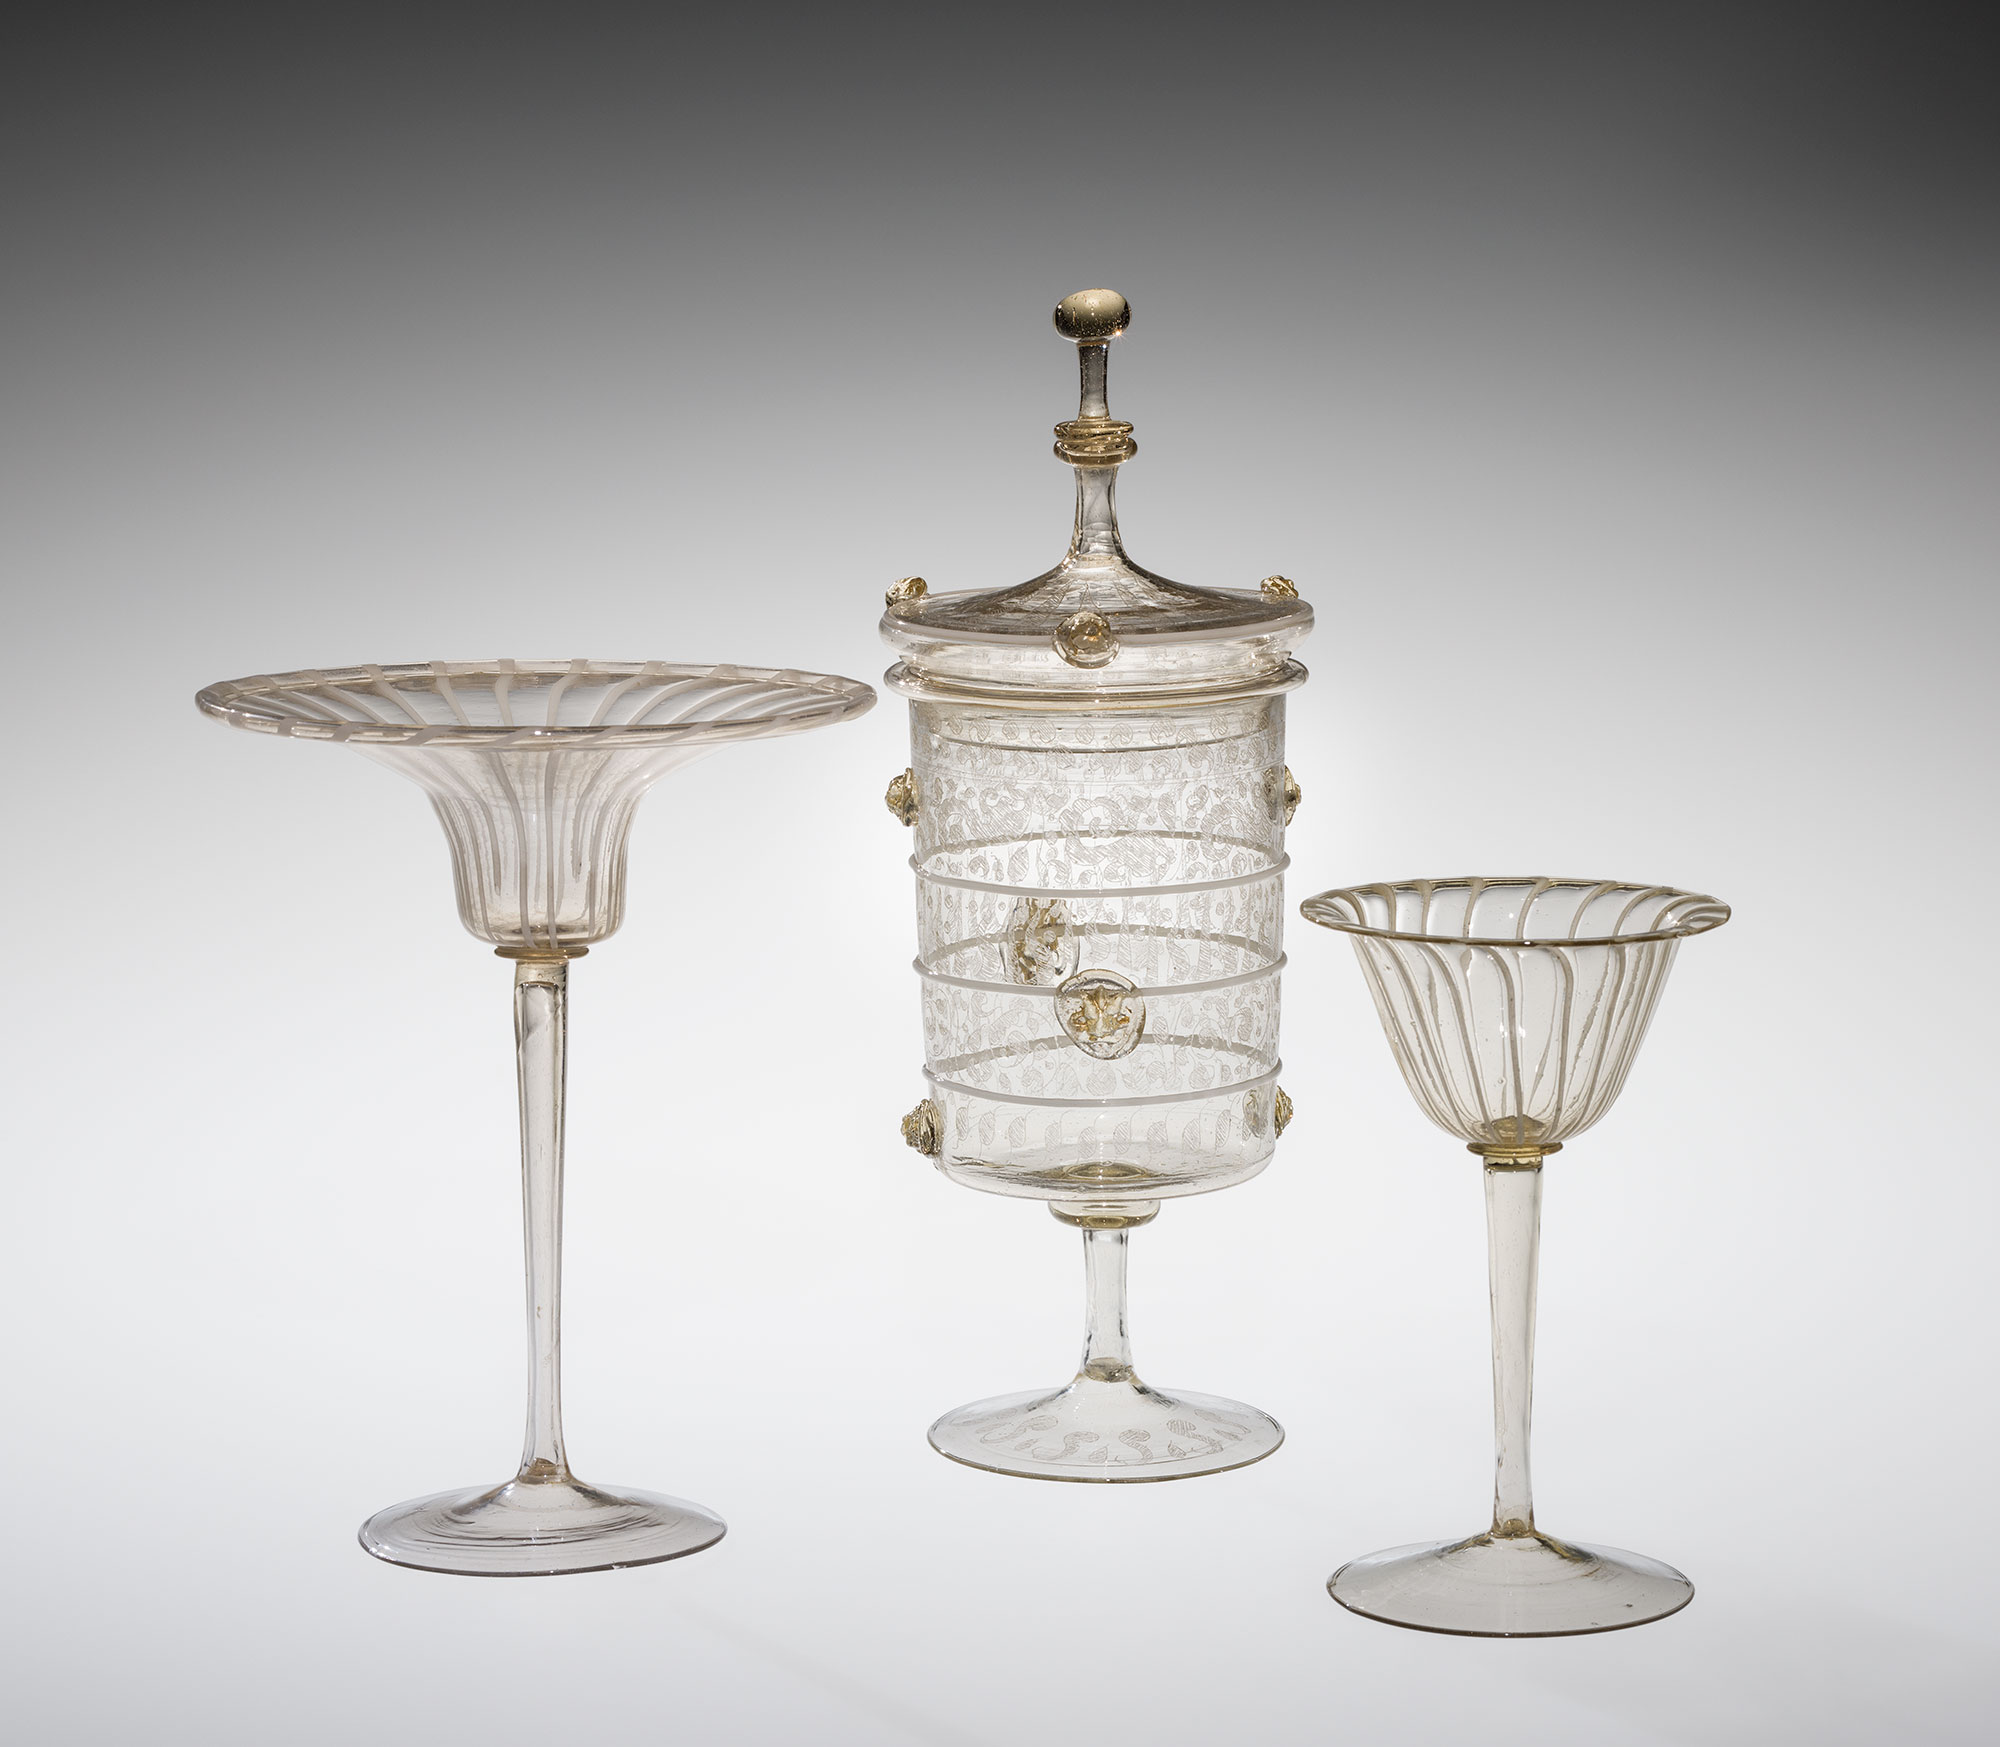 Three clear glass vessels, one with a cover